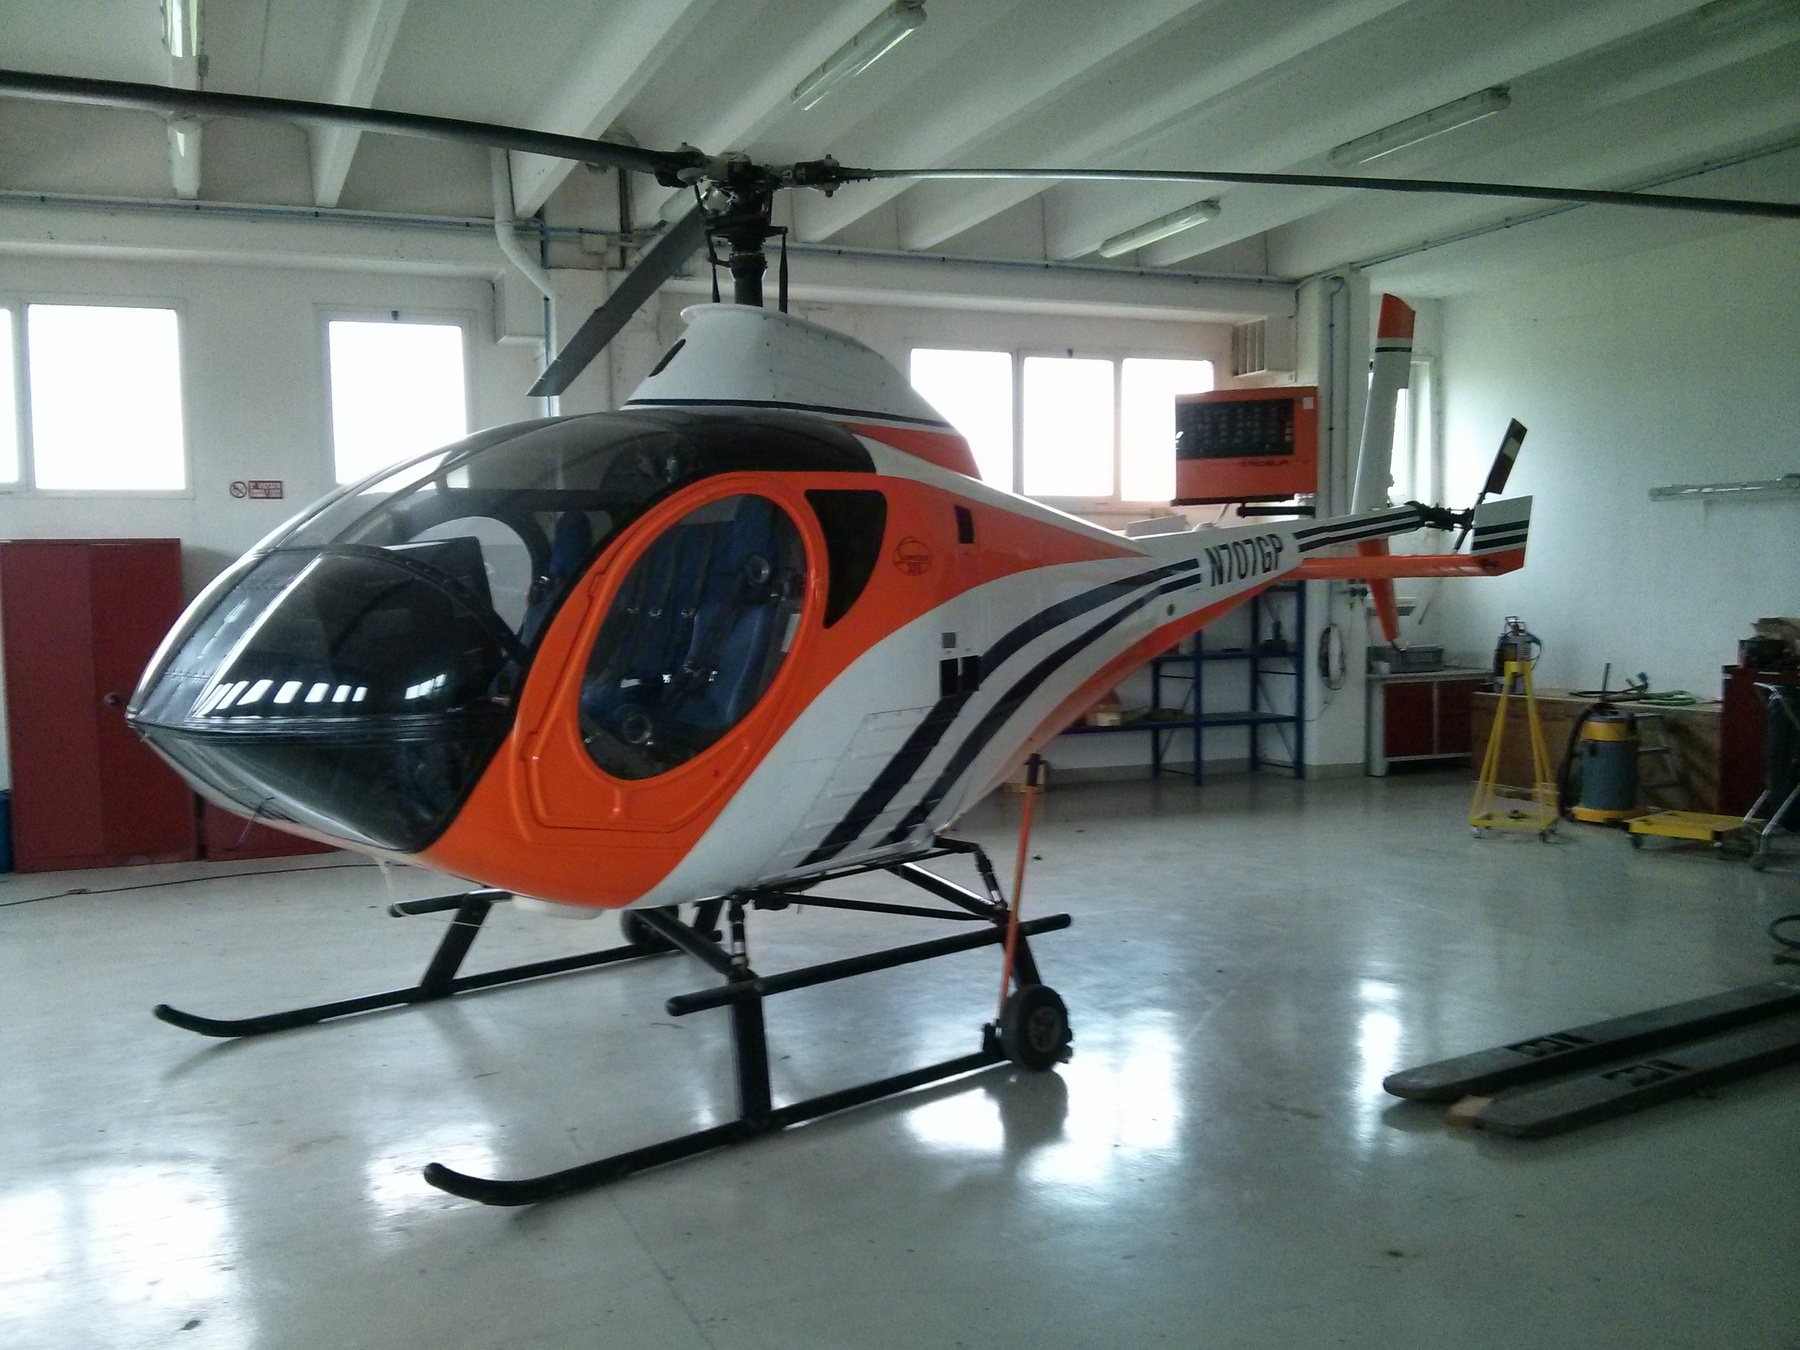 ... com aircraft for sale helicopter 1999 schweizer s 333 4846